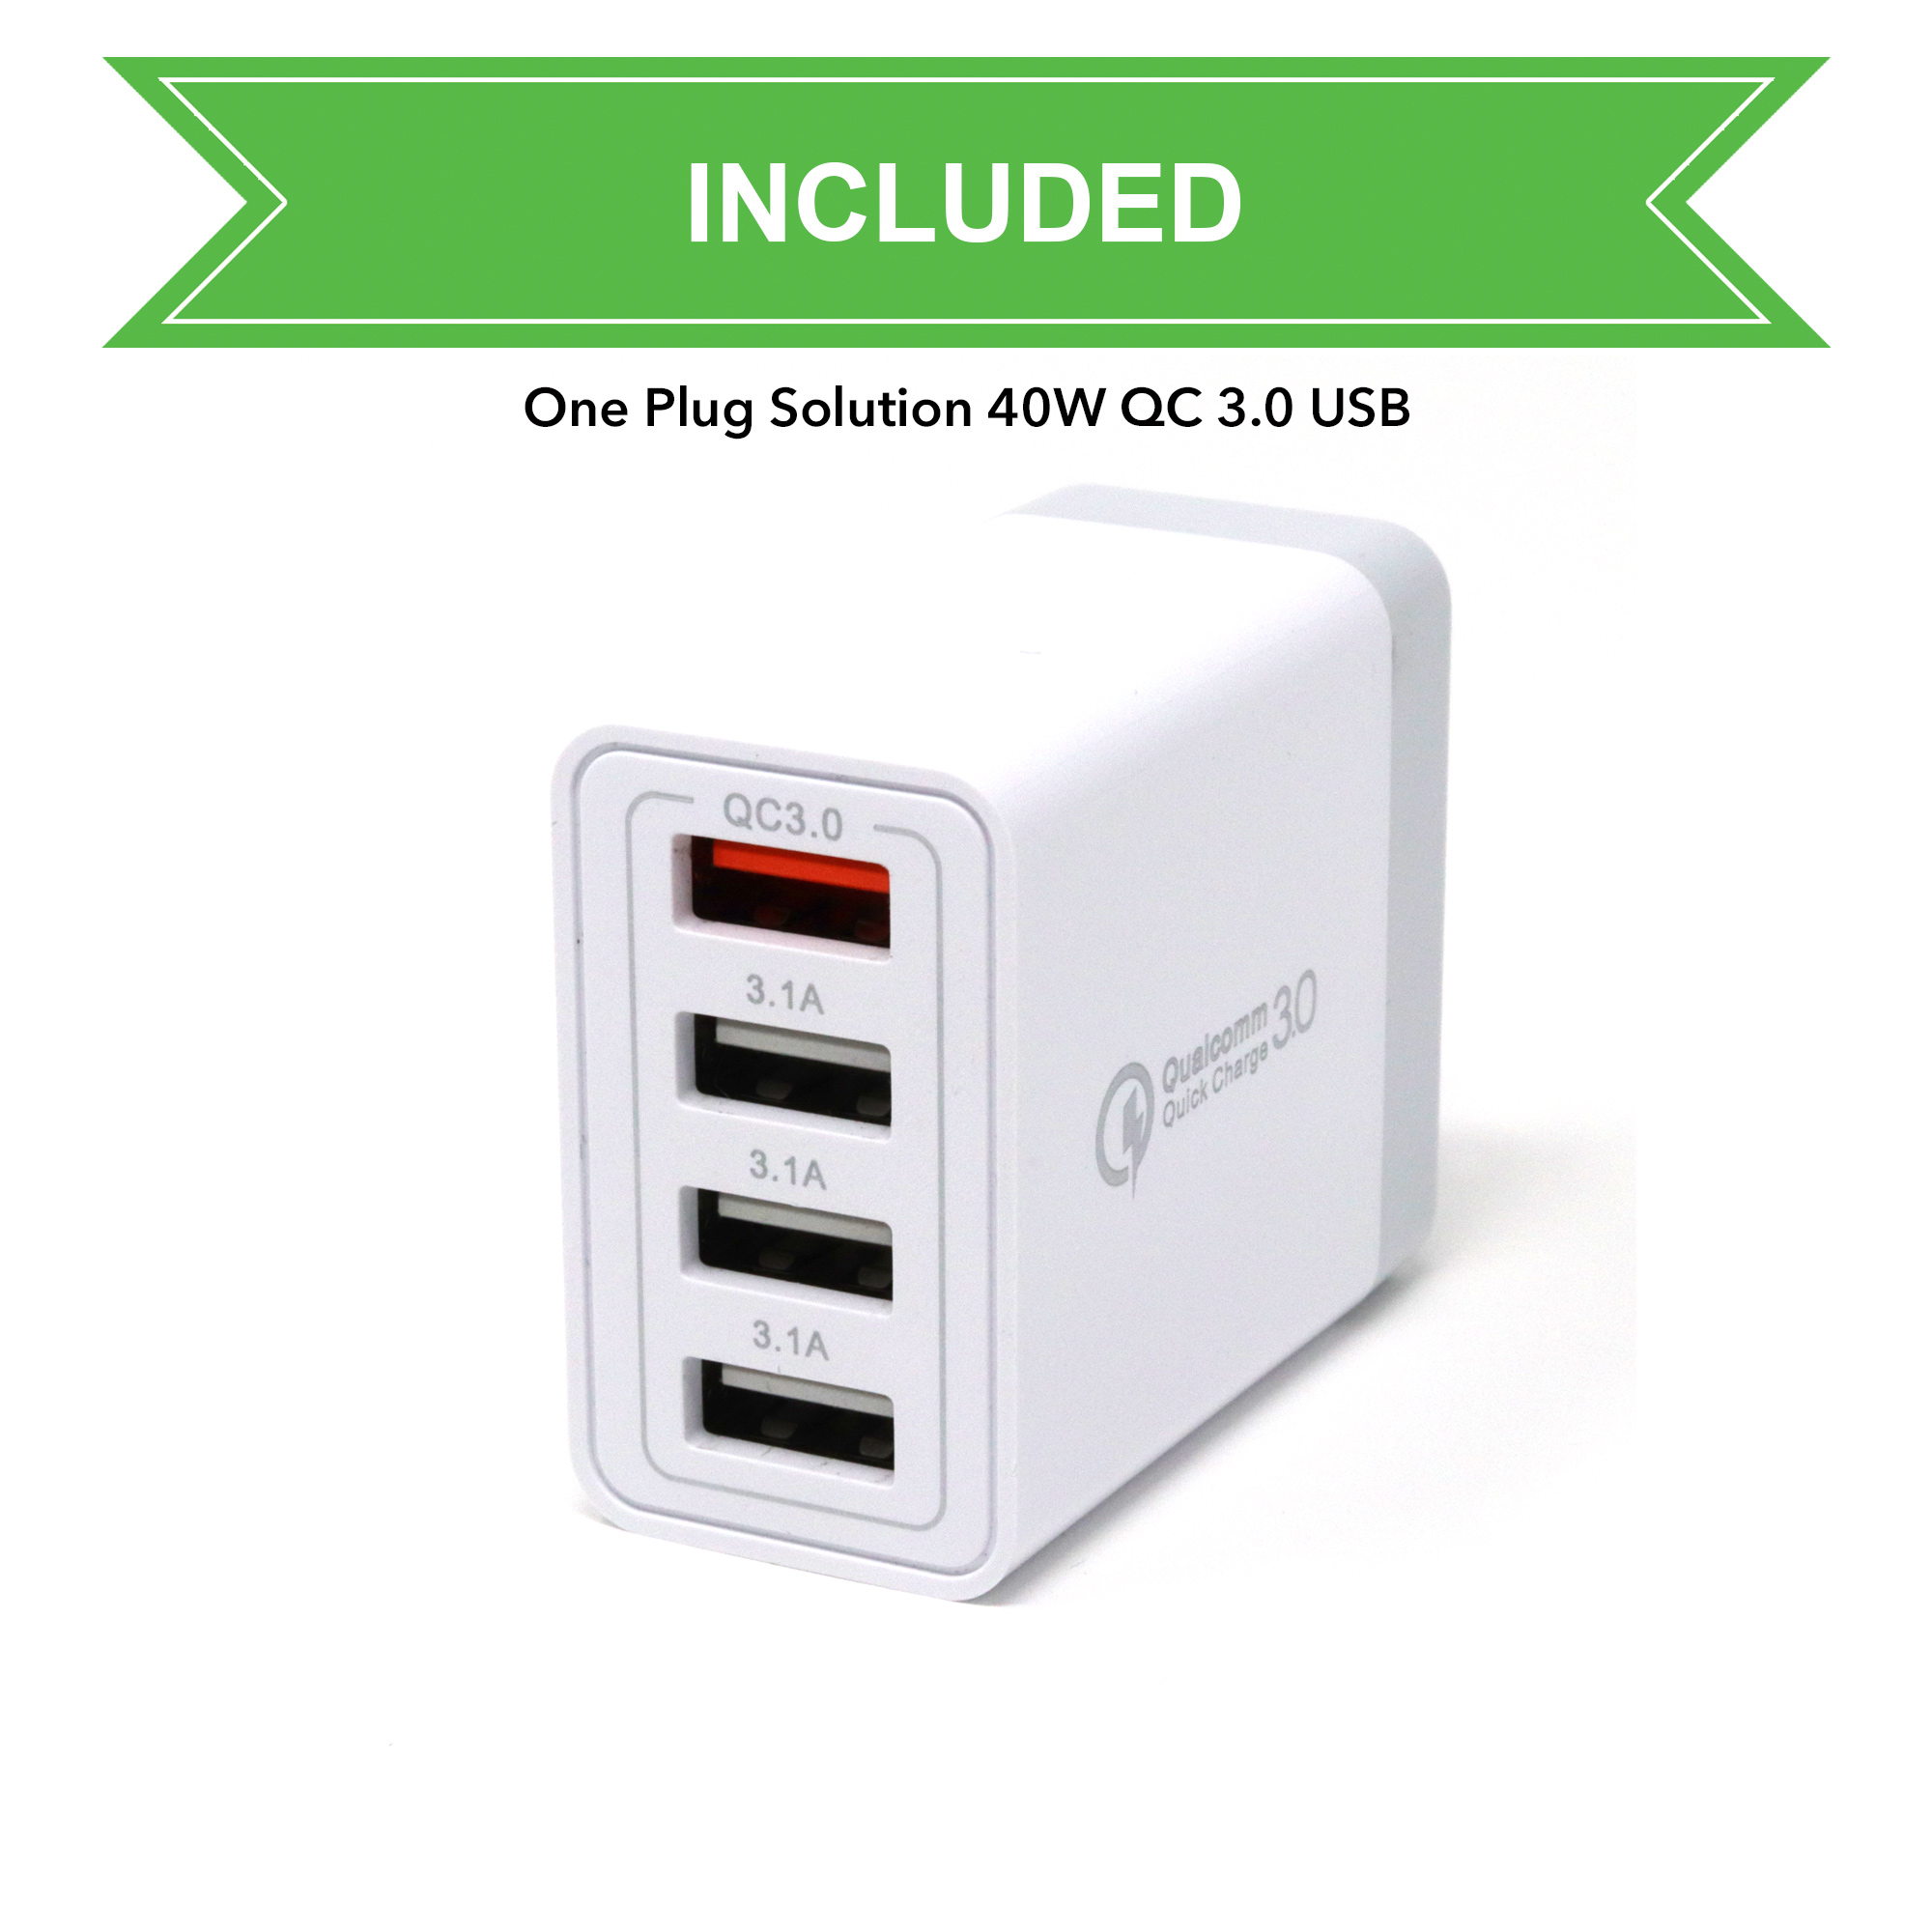 4-Port-One-Plug-Solution.jpg